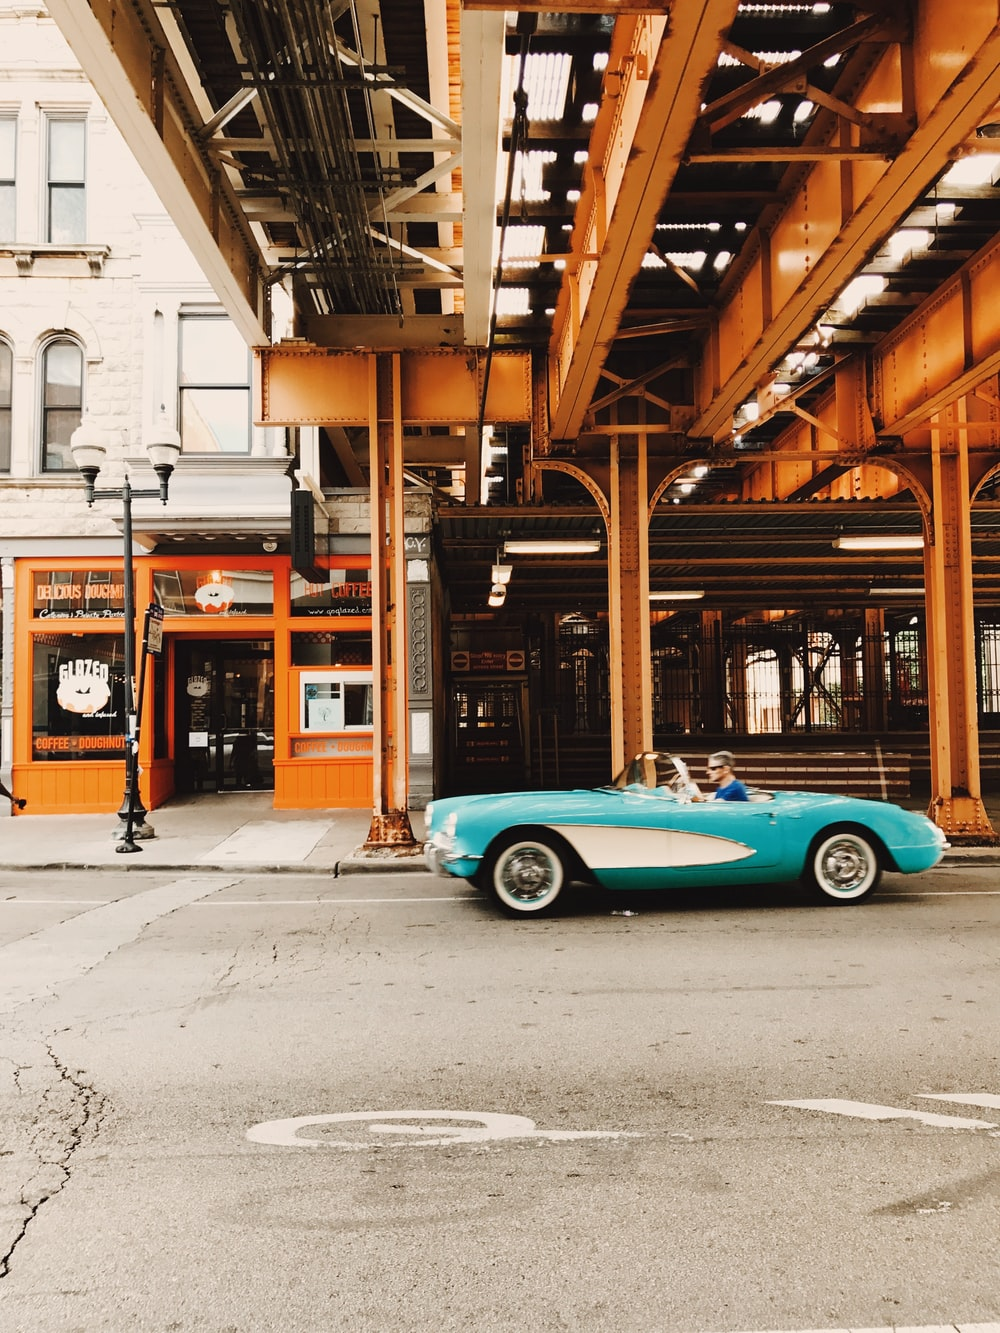 teal coupe parked beside brown wooden building during daytime